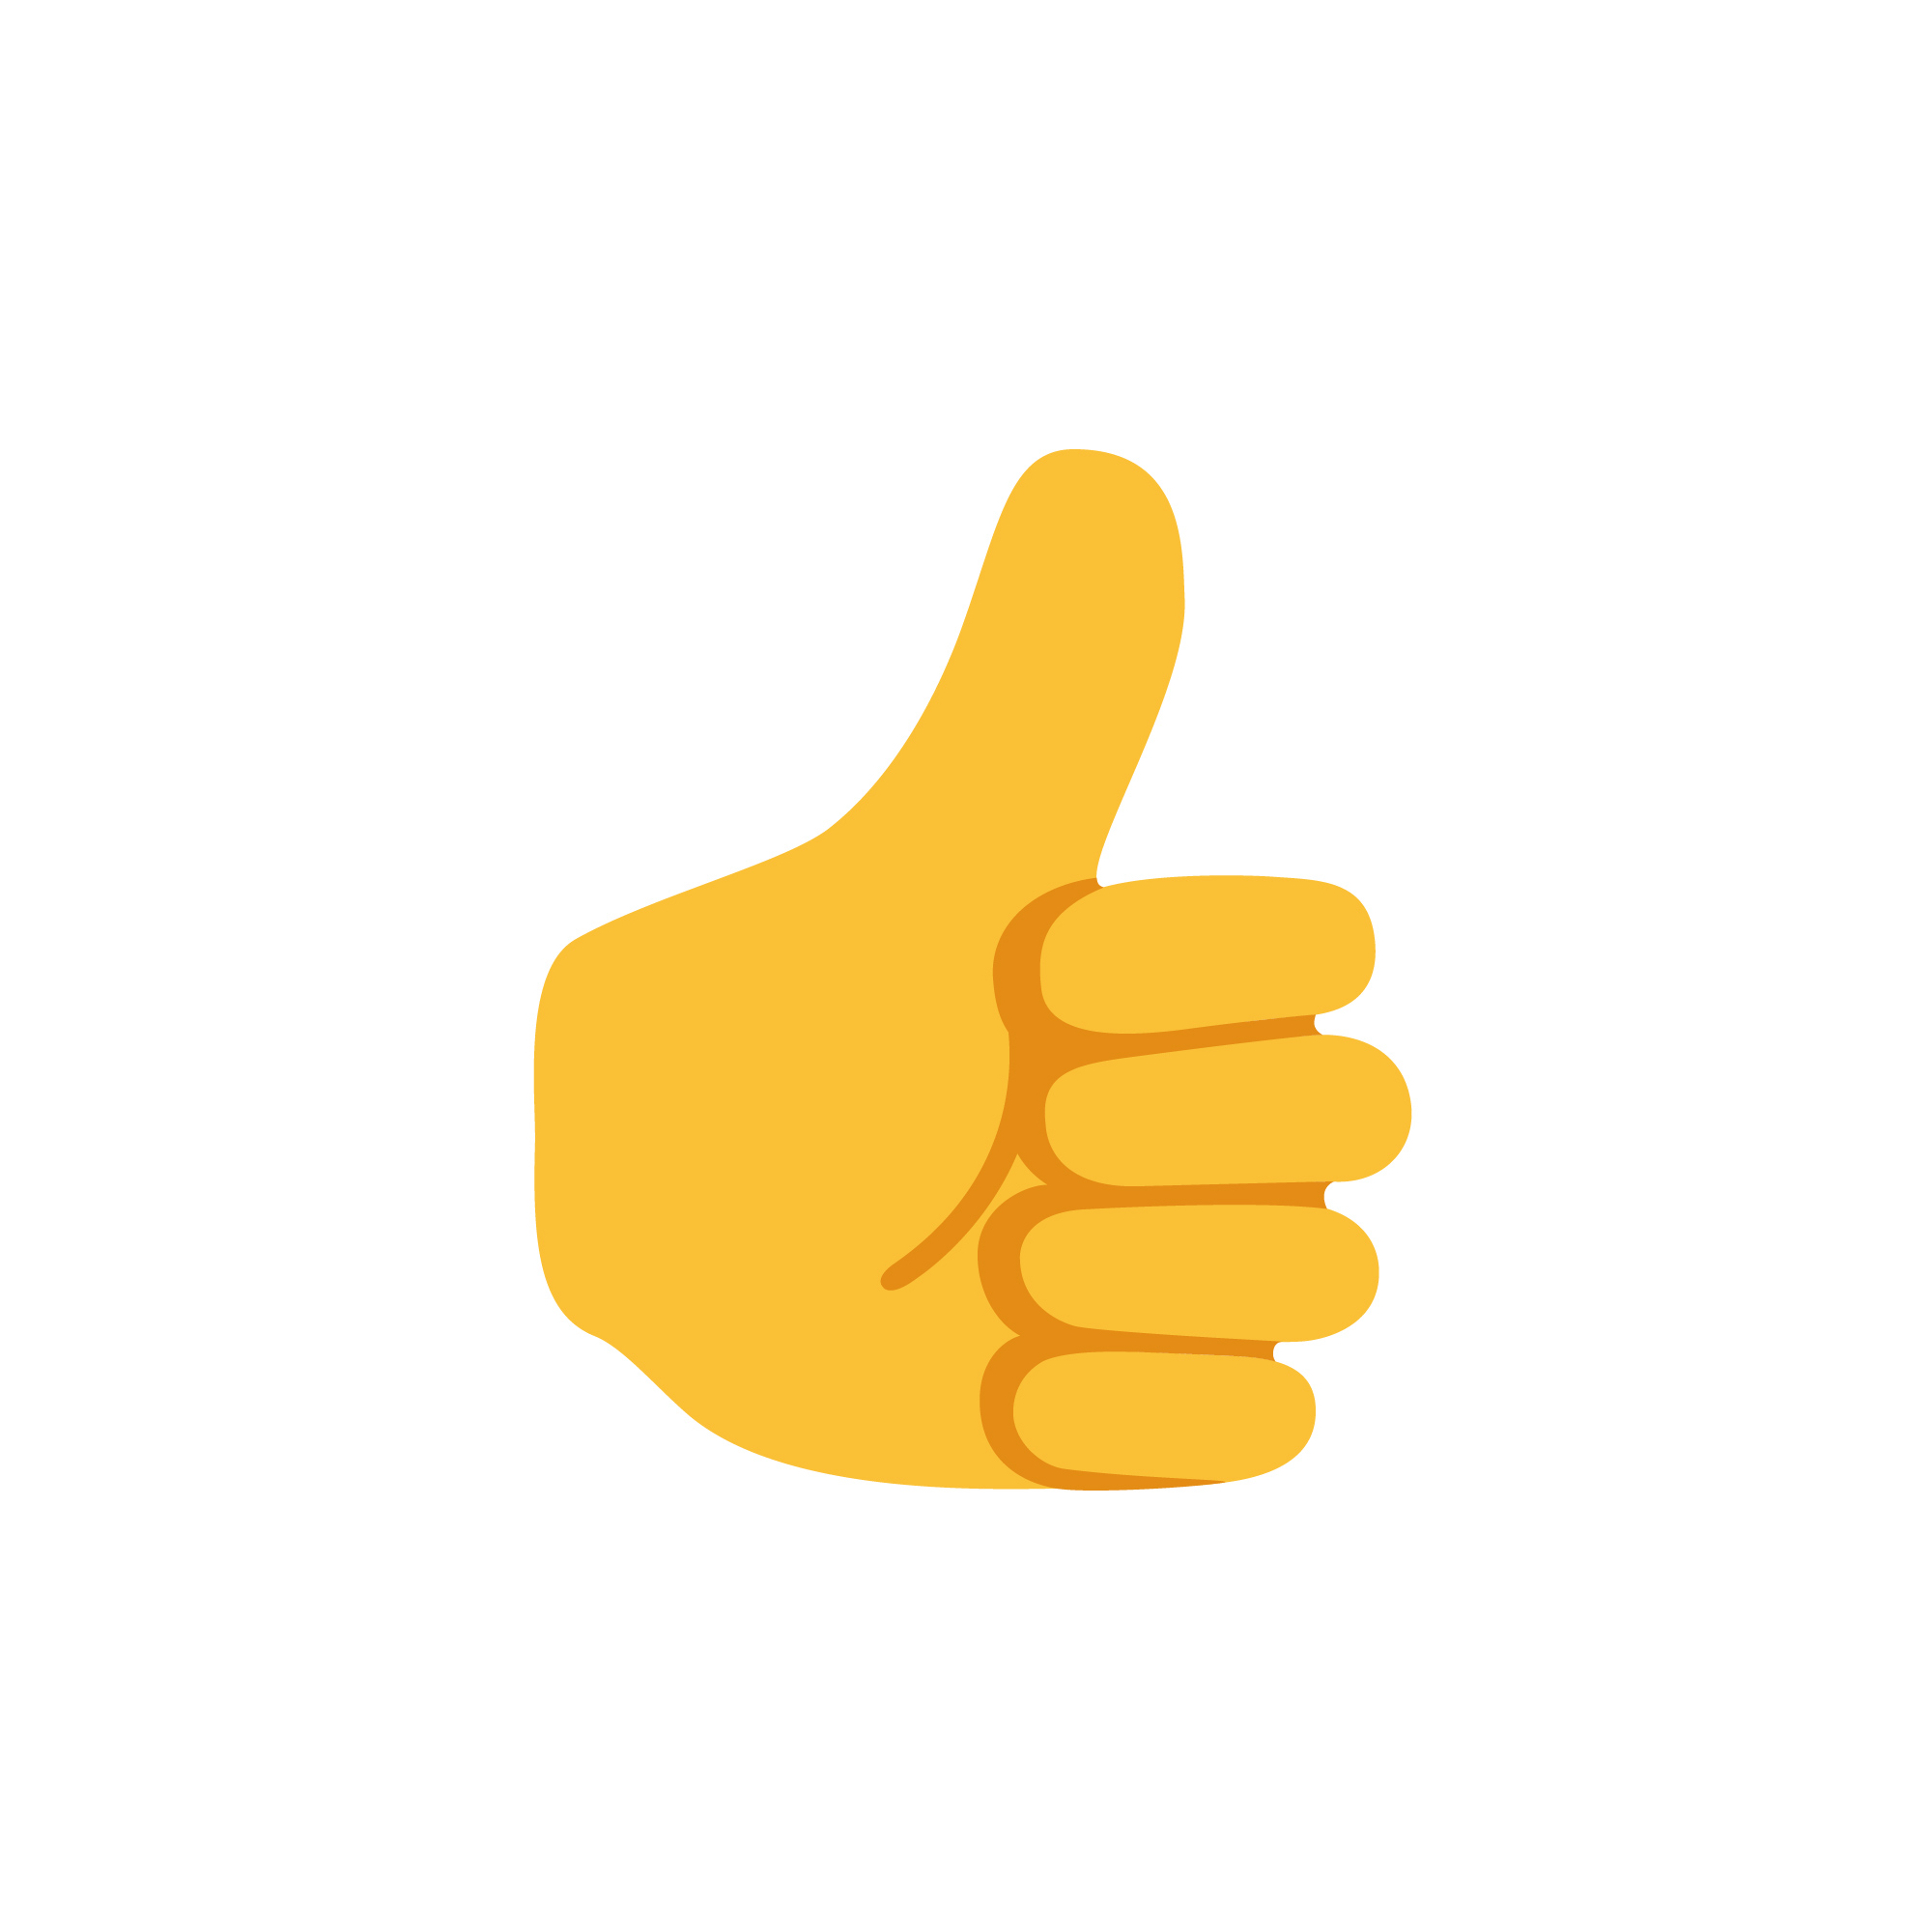 Thumbs Up Photo